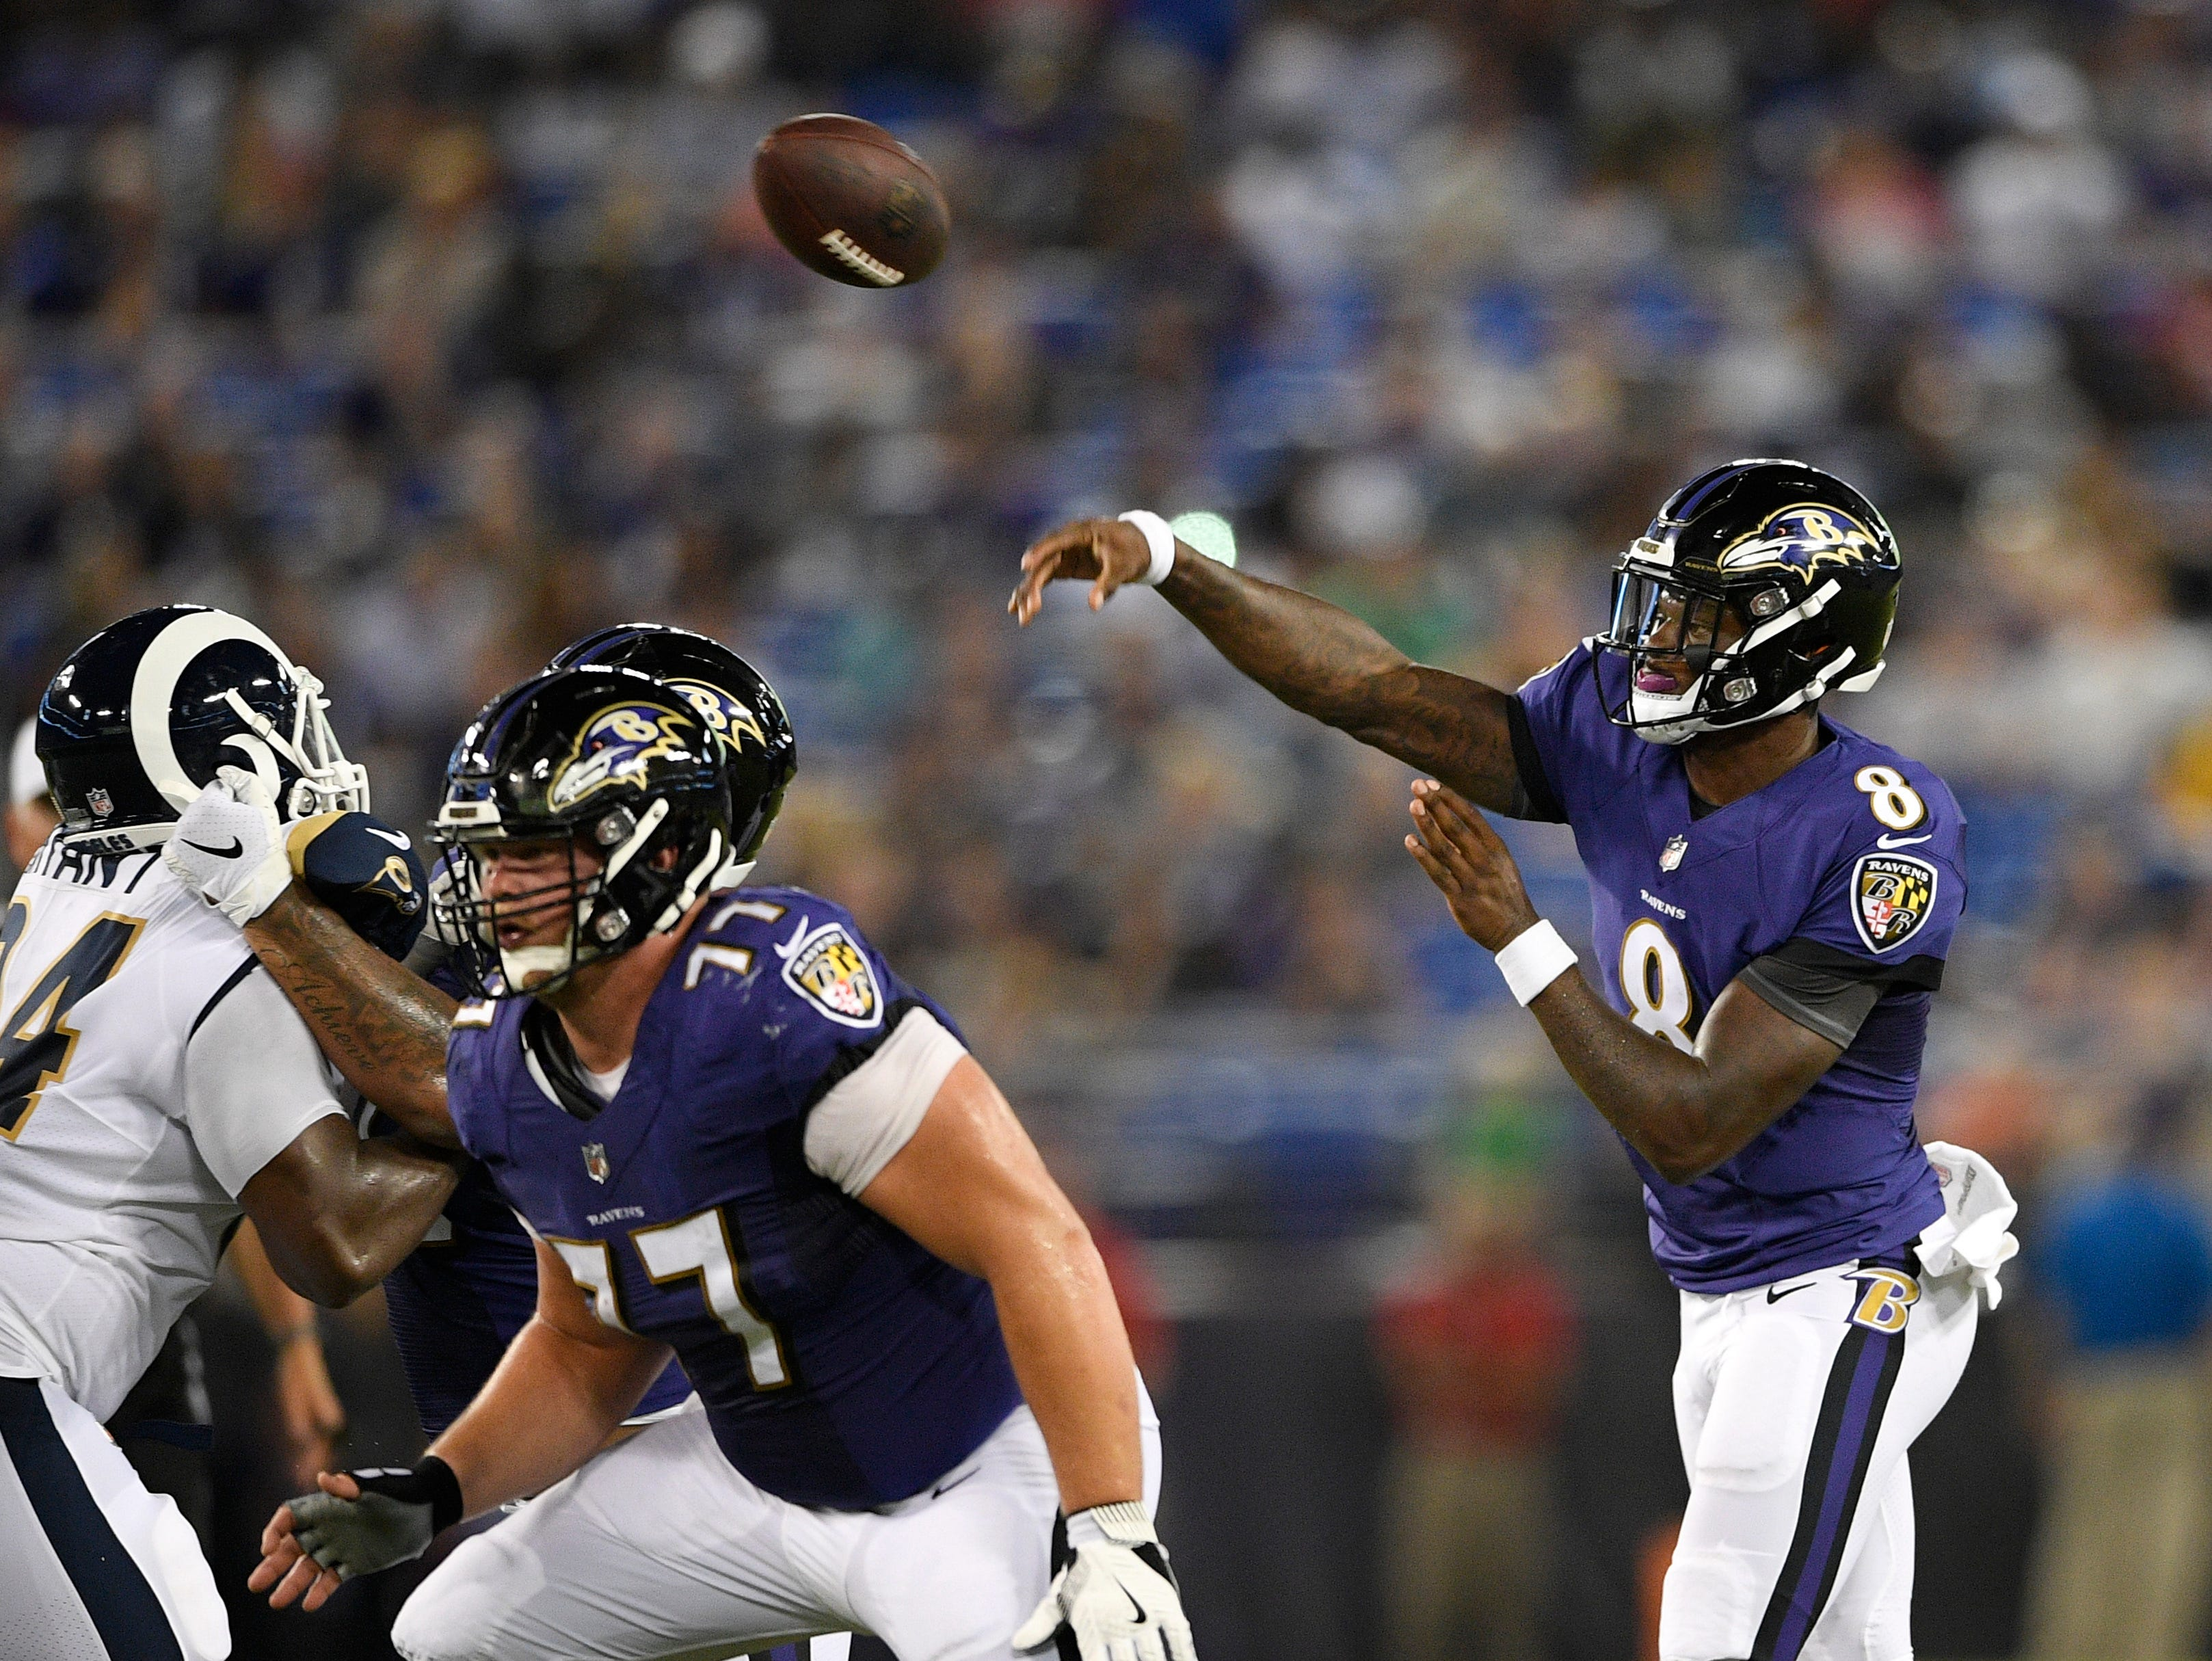 Baltimore Ravens quarterback Lamar Jackson, right, throws to a receiver in the first half of a preseason NFL football game against the Los Angeles Rams, Thursday, Aug. 9, 2018, in Baltimore. (AP Photo/Nick Wass)